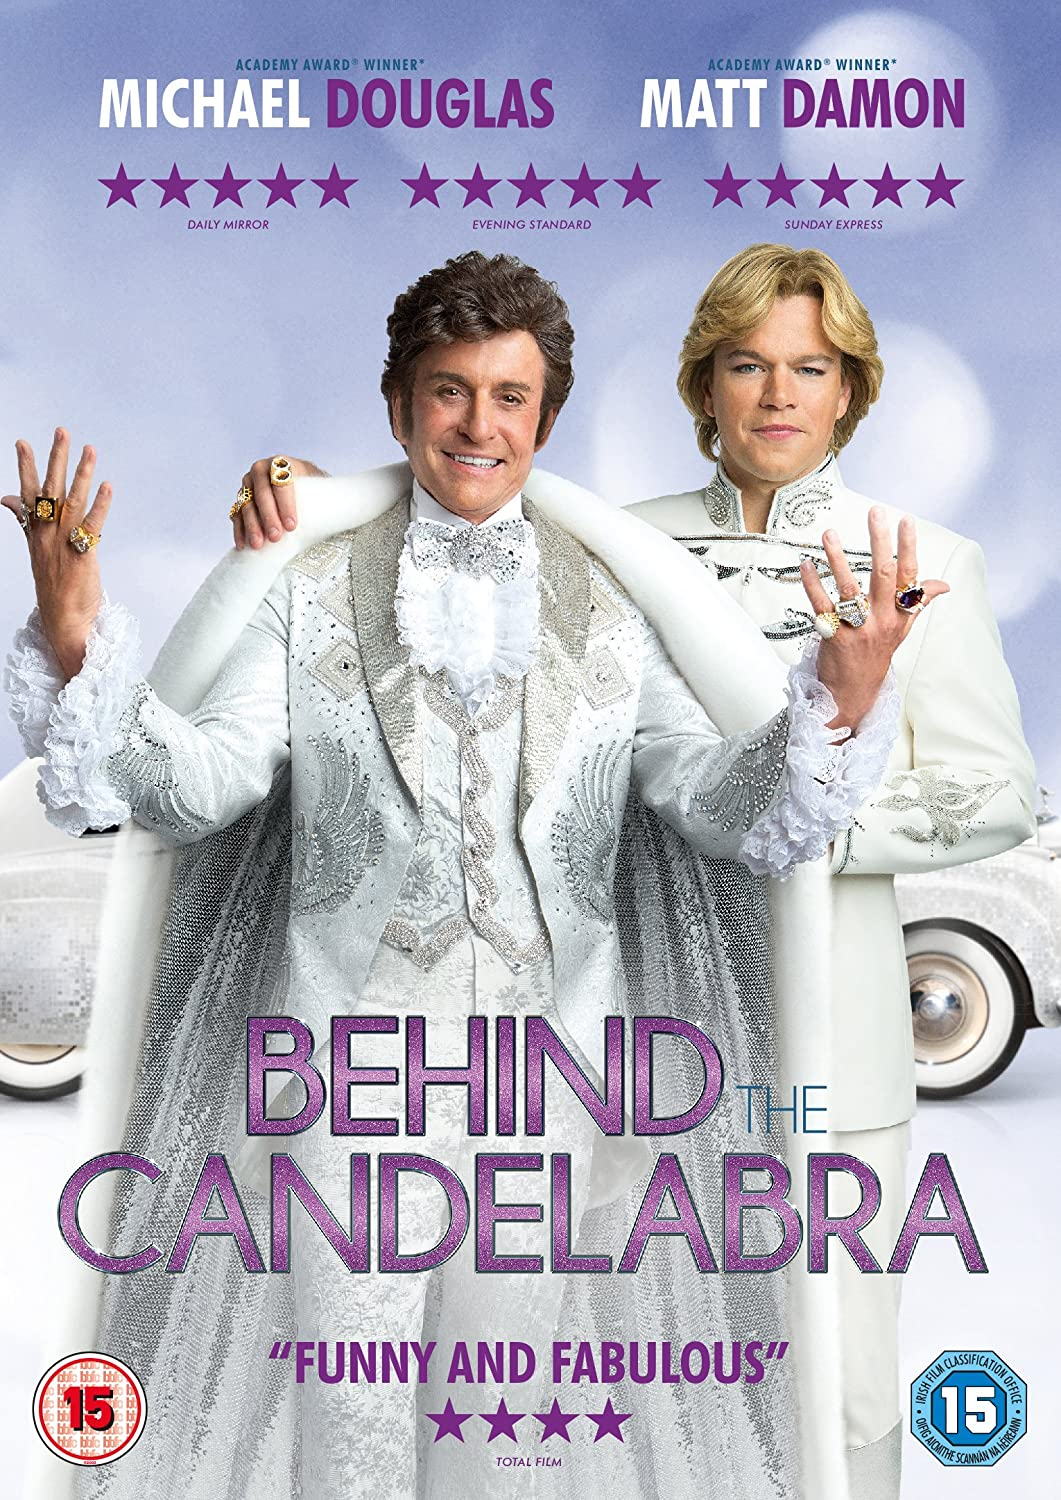 Behind the Candelabra [DVD]: Amazon.co.uk: Michael Douglas, Matt ...